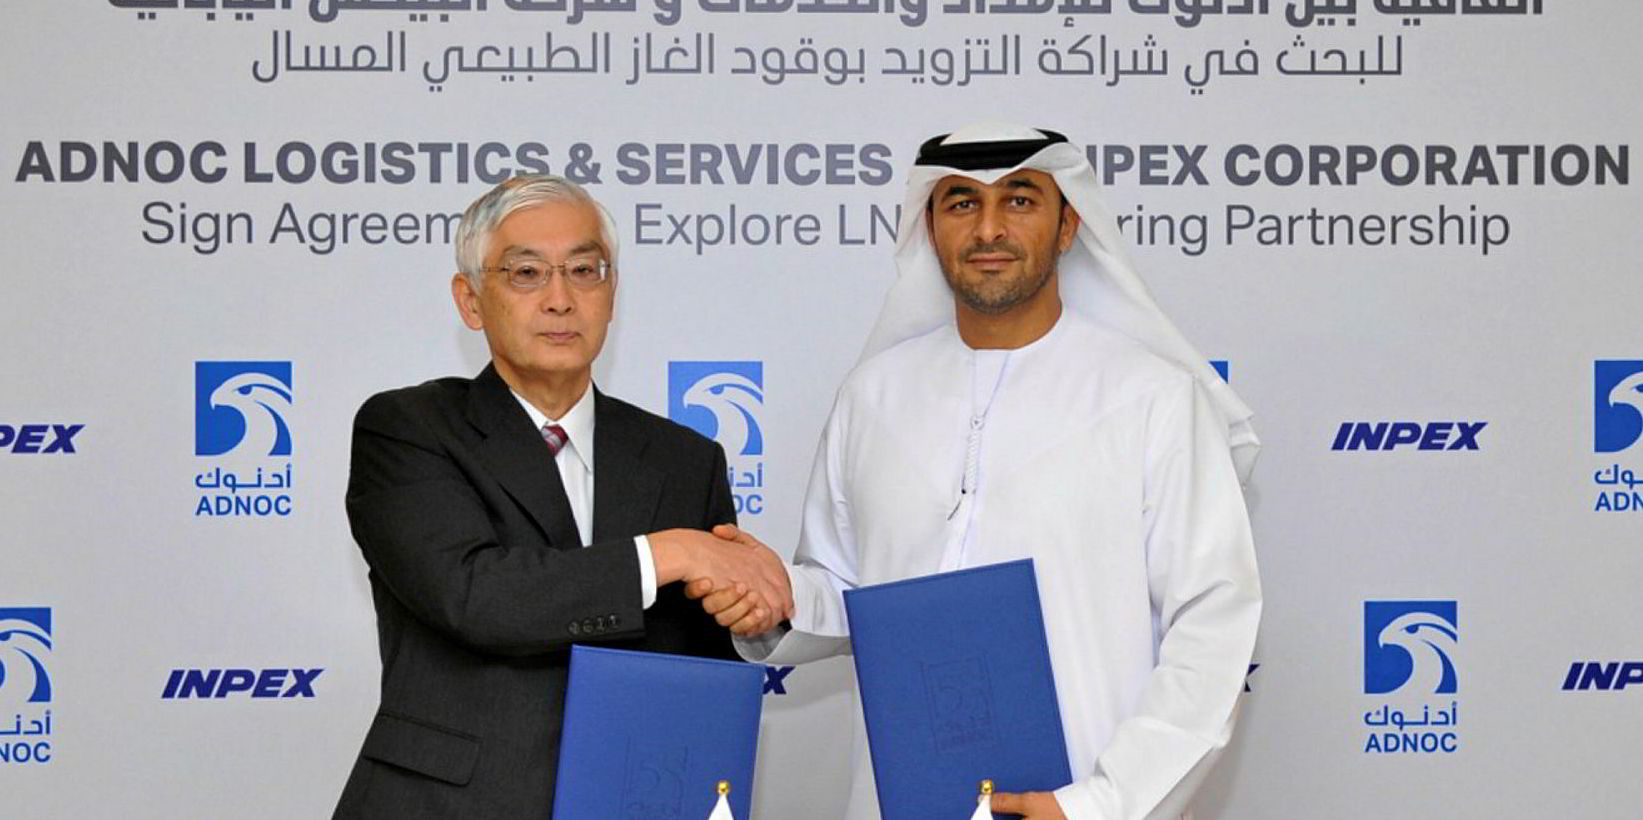 Adnoc teams with Inpex in LNG bunkering alliance | TradeWinds